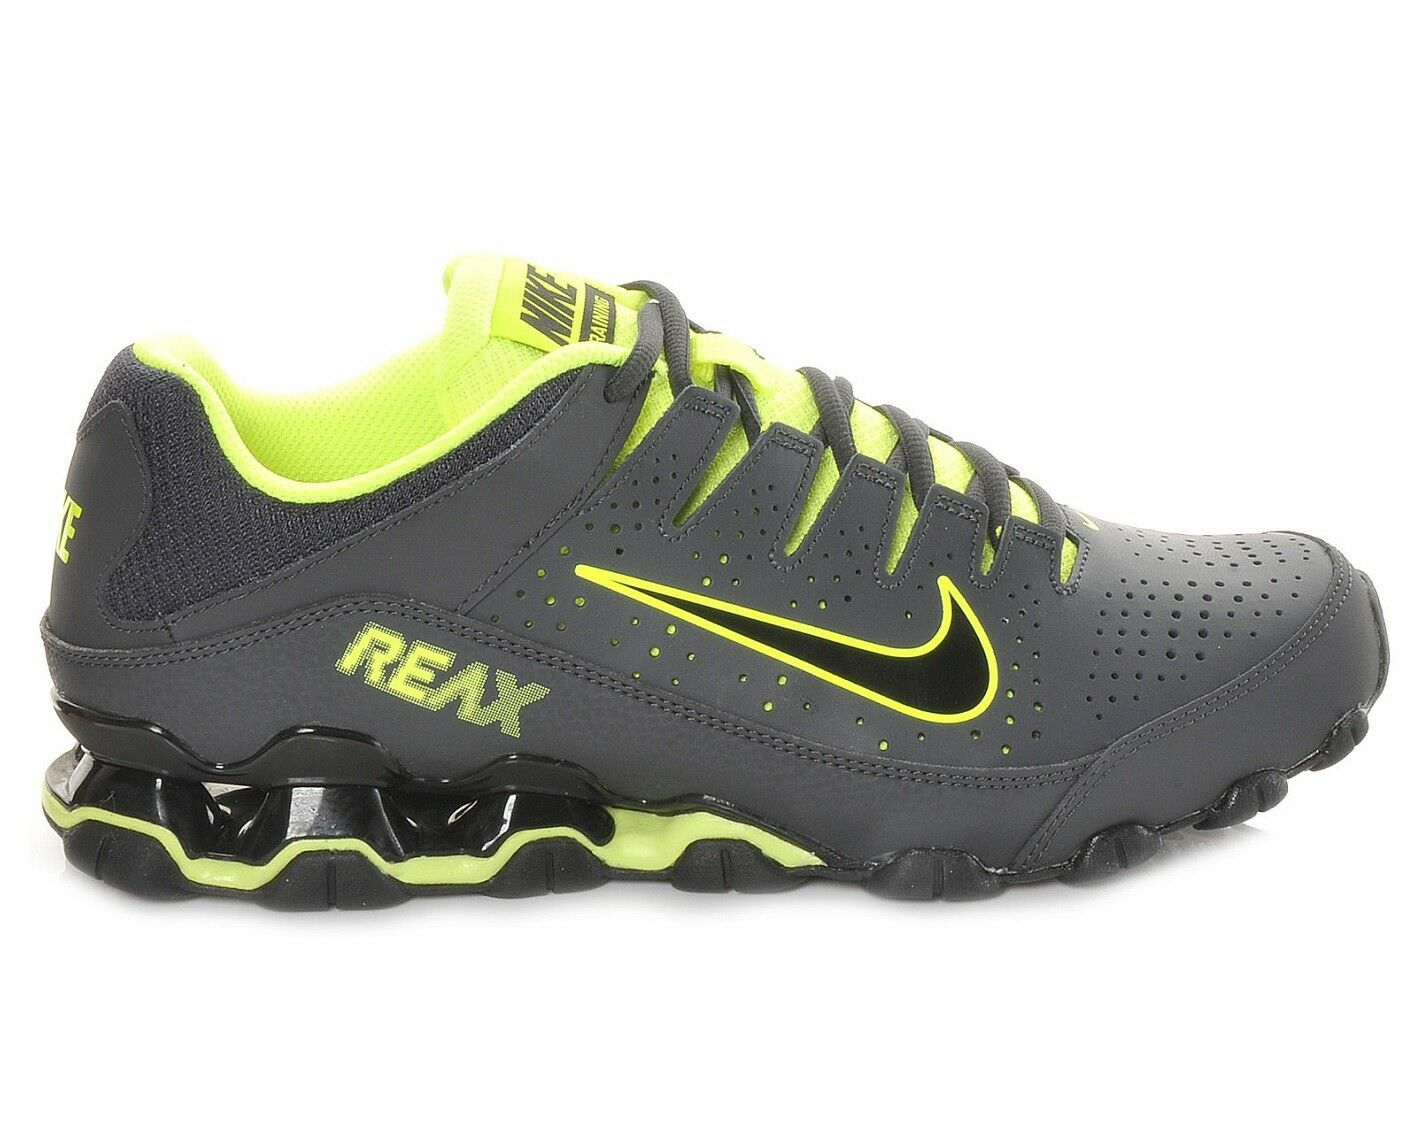 Nike Reax 8 TR Mens 616272-036 Anthracite Black Volt Training Shoes Comfortable New shoes for men and women, limited time discount